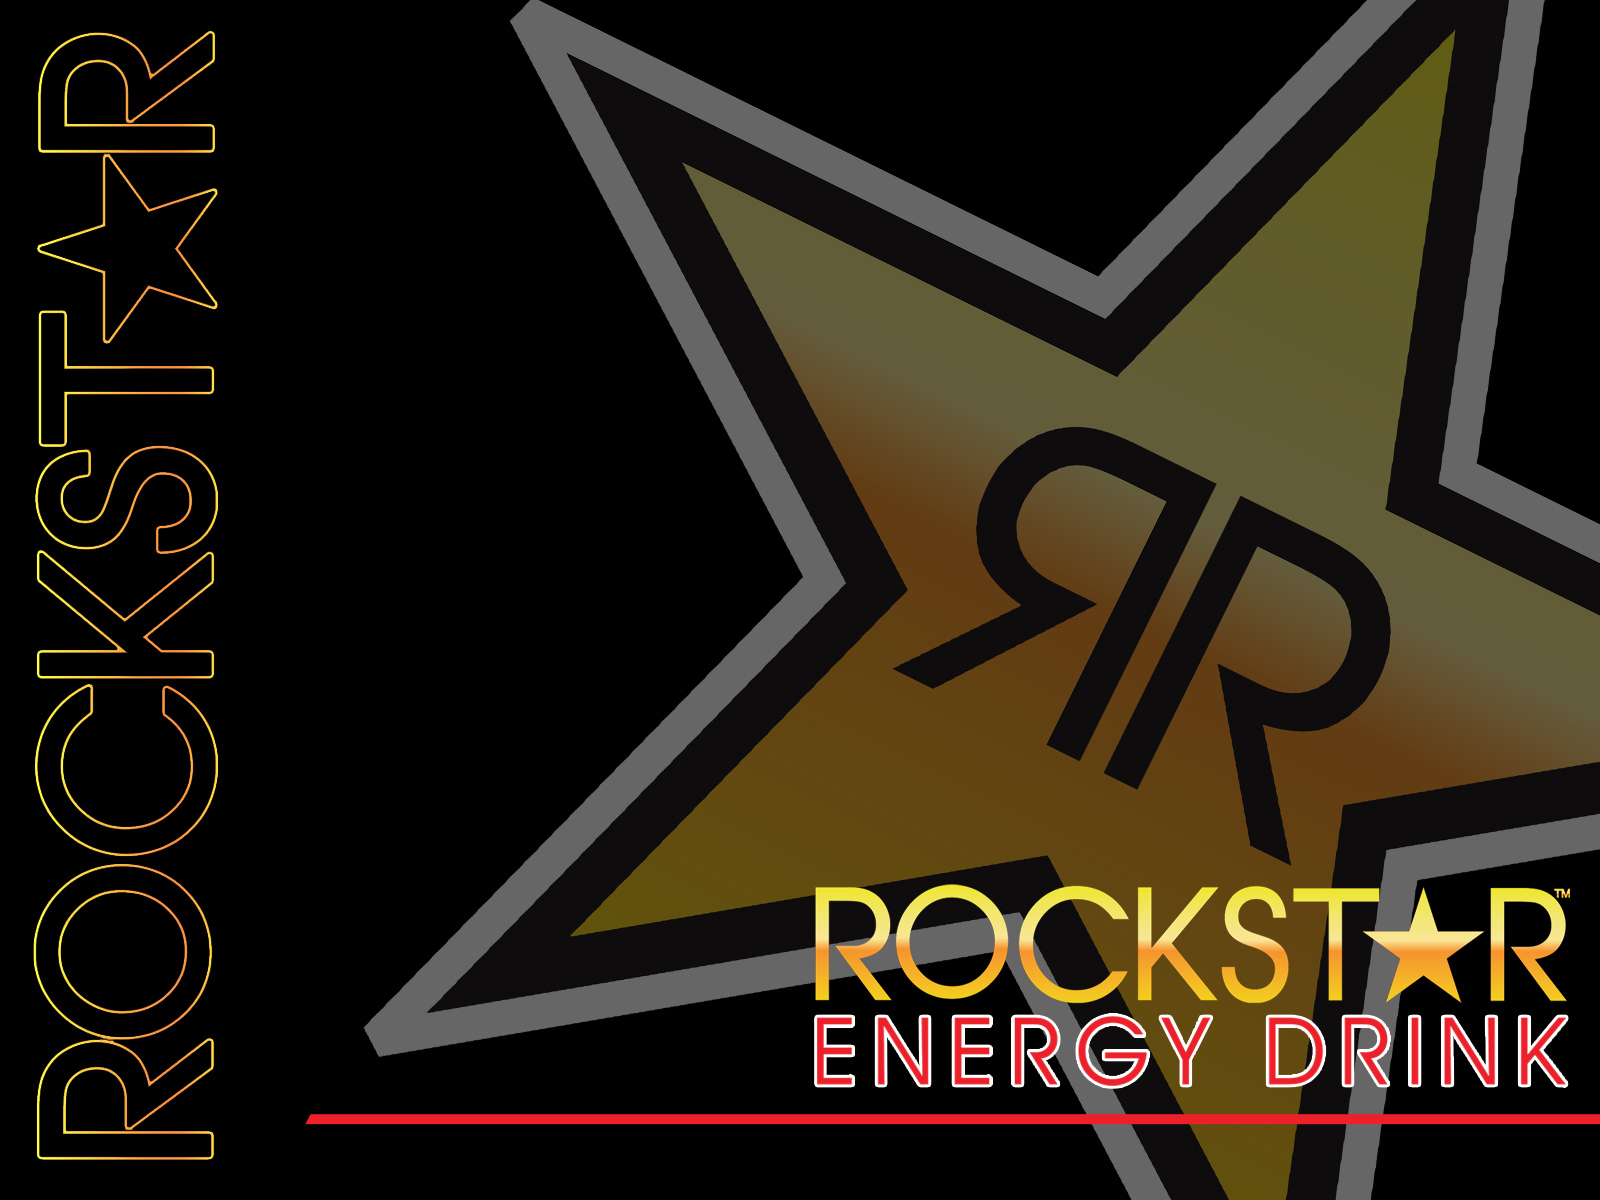 rockstar energy logo wallpaper 1600x1200 80108